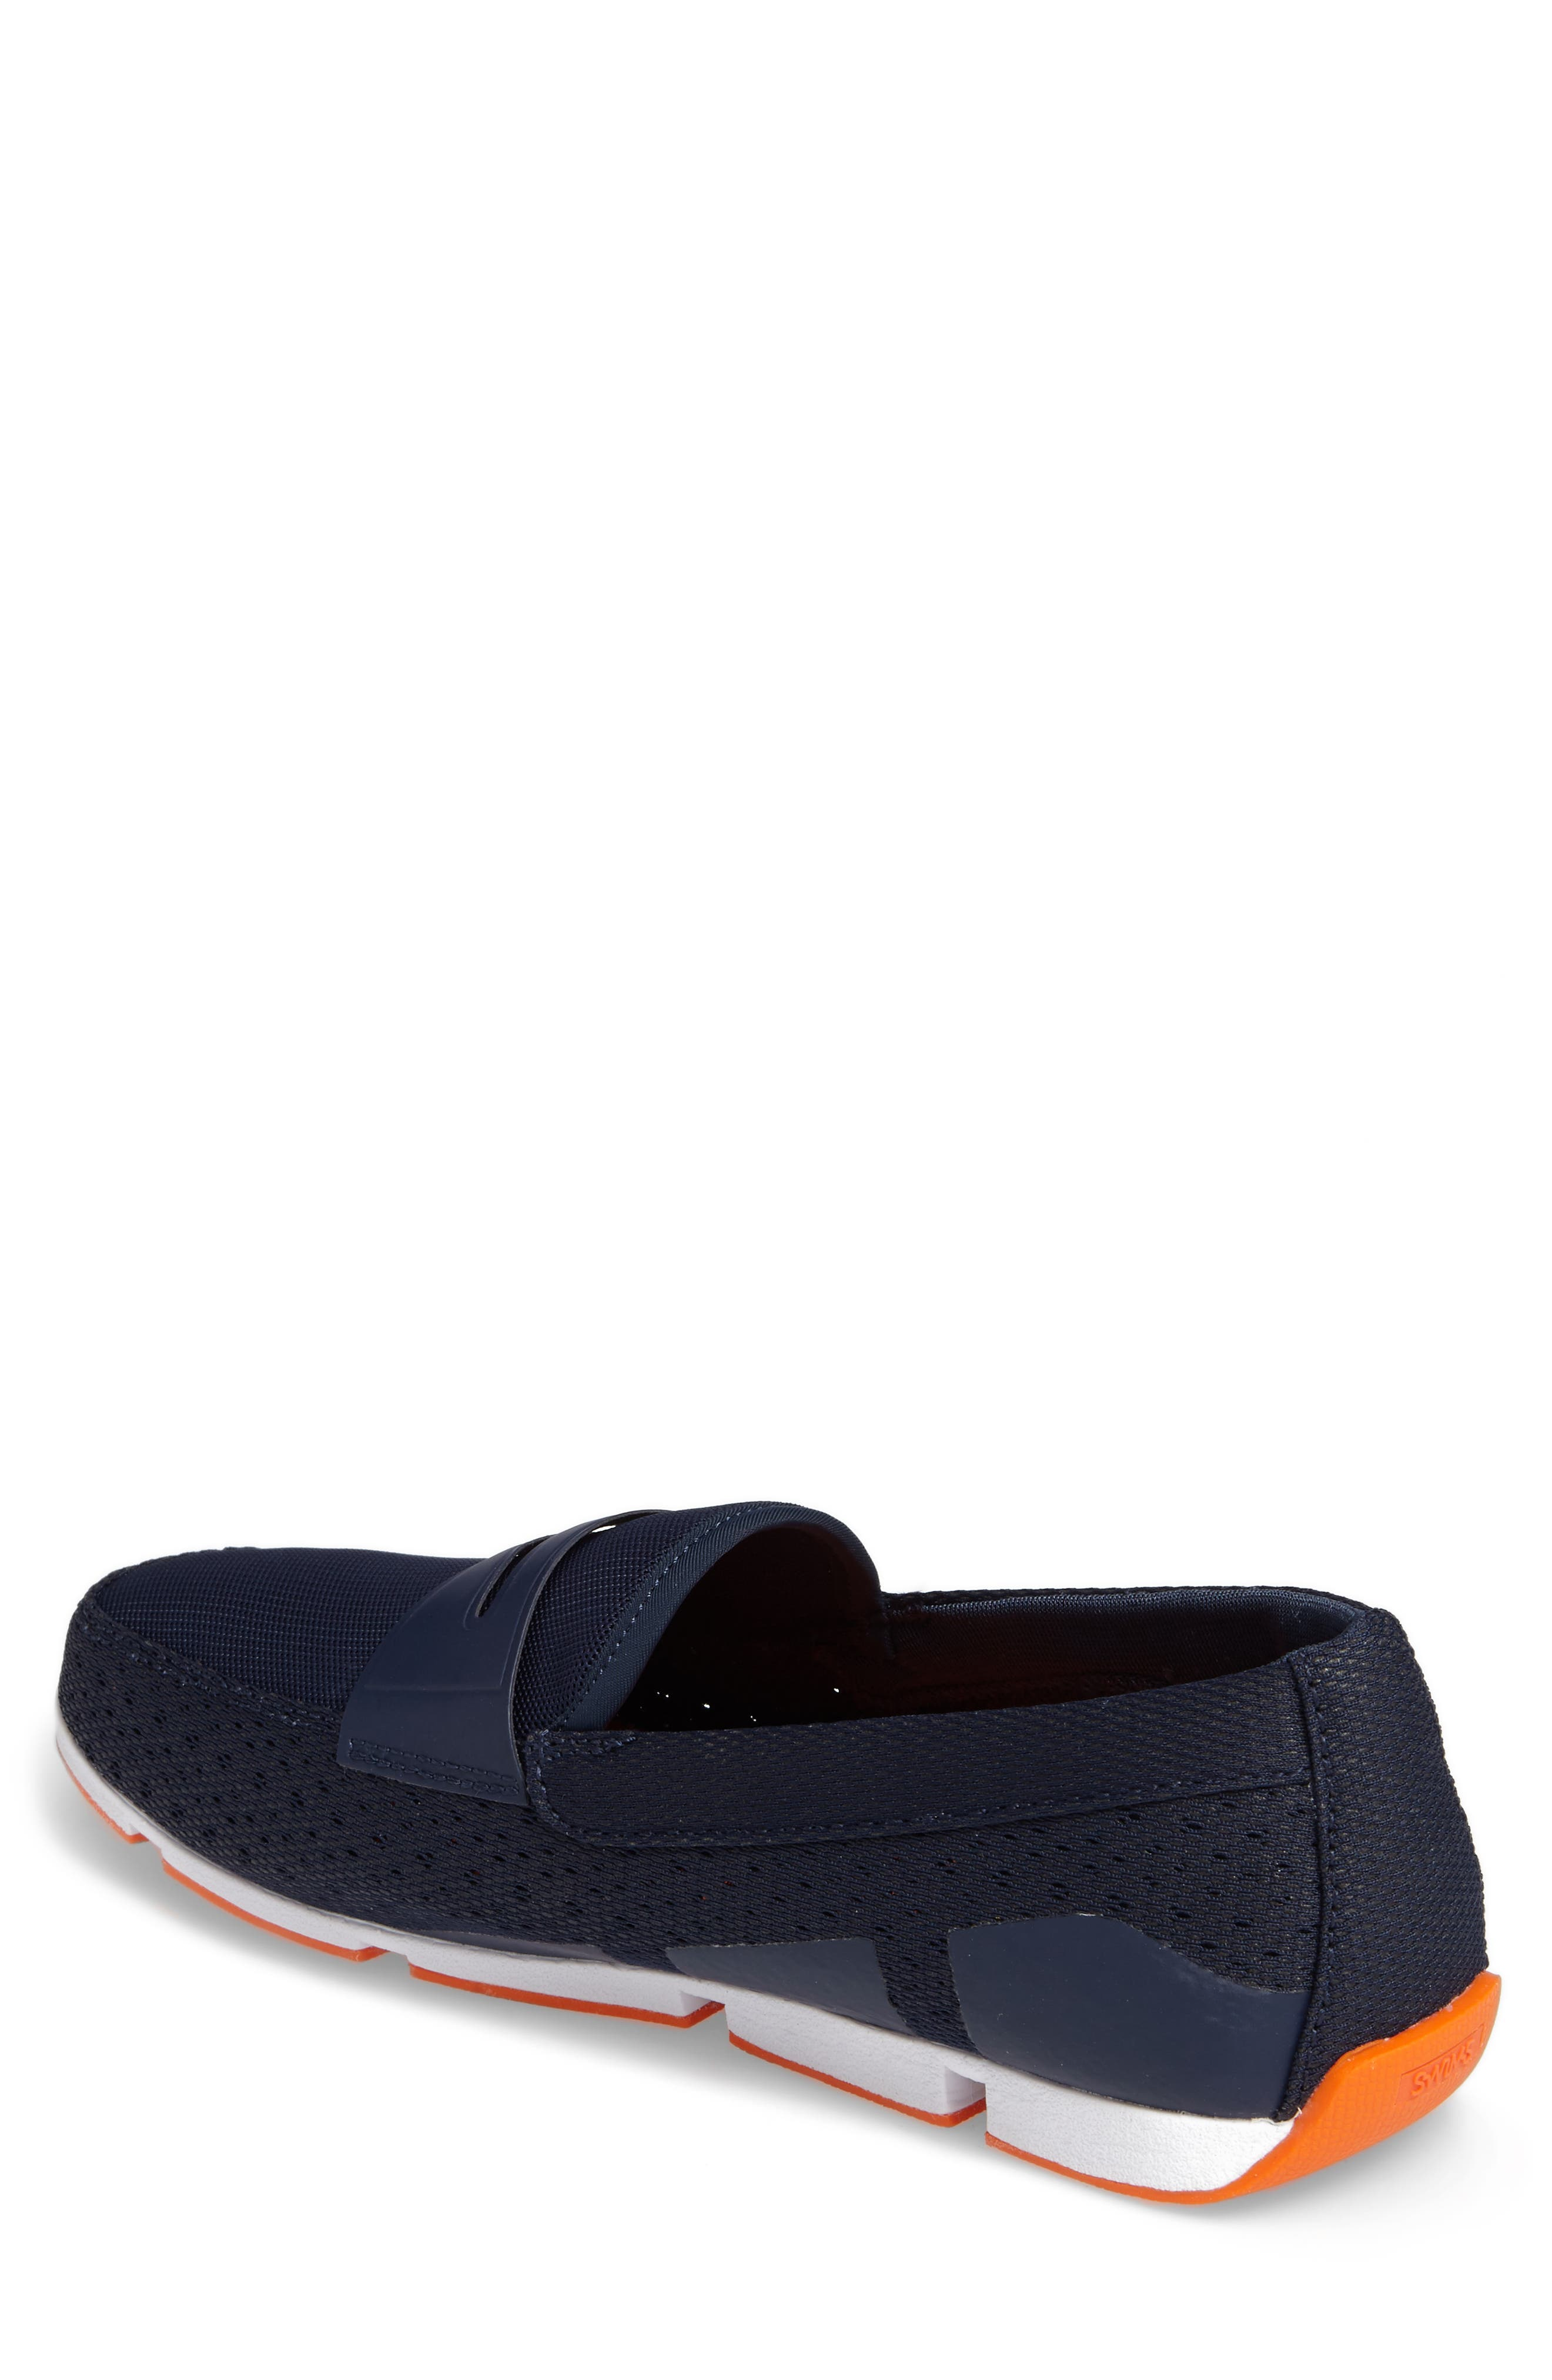 Breeze Penny Loafer,                             Alternate thumbnail 10, color,